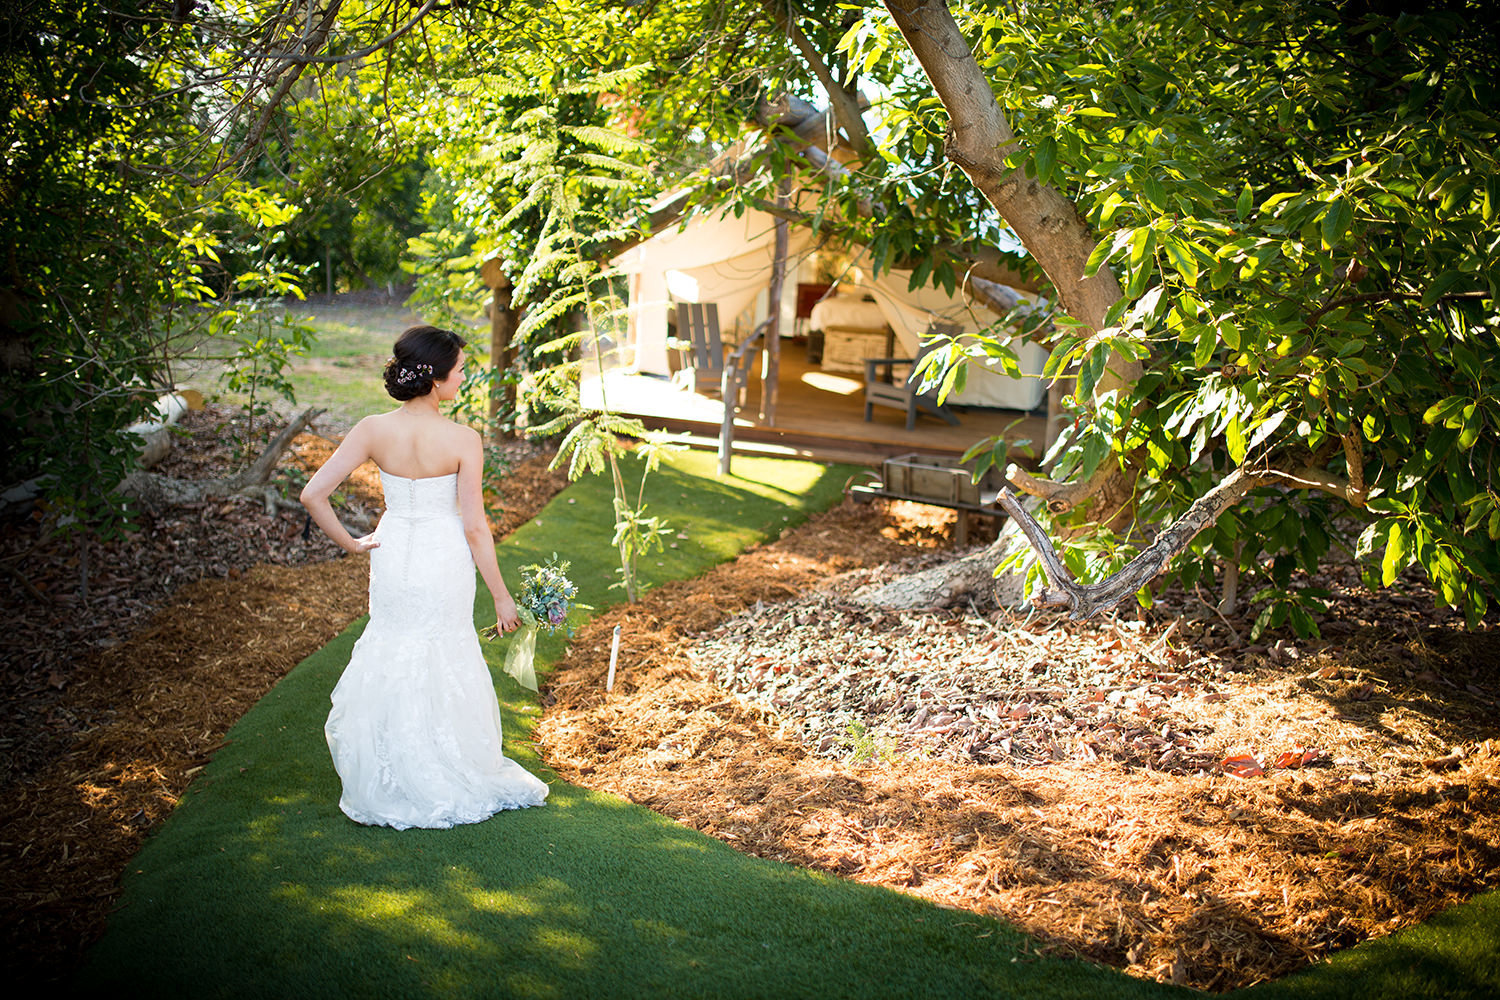 rustic camping with bride